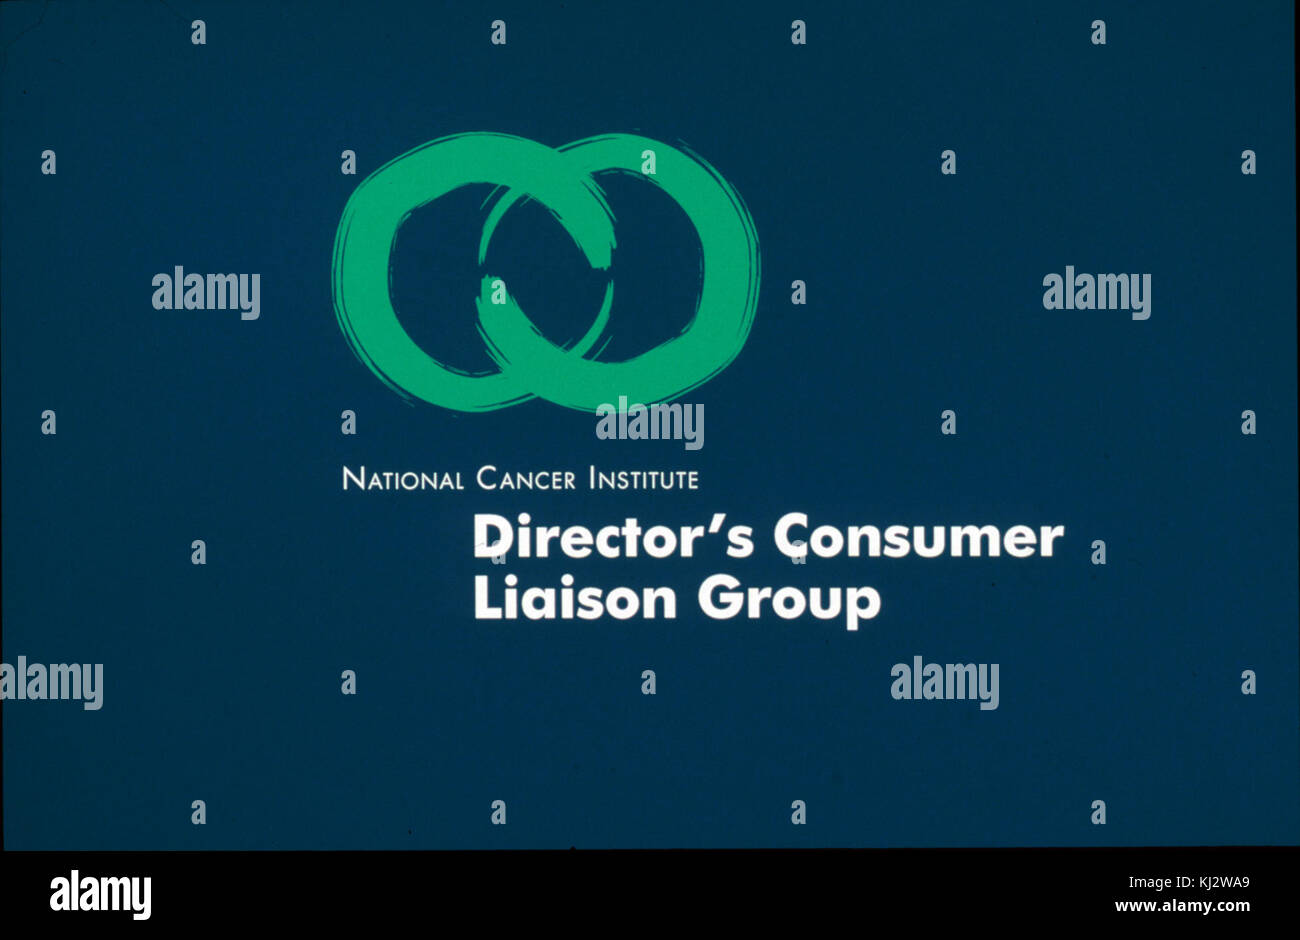 Director's consumer liaison group (dclg) logo - Stock Image